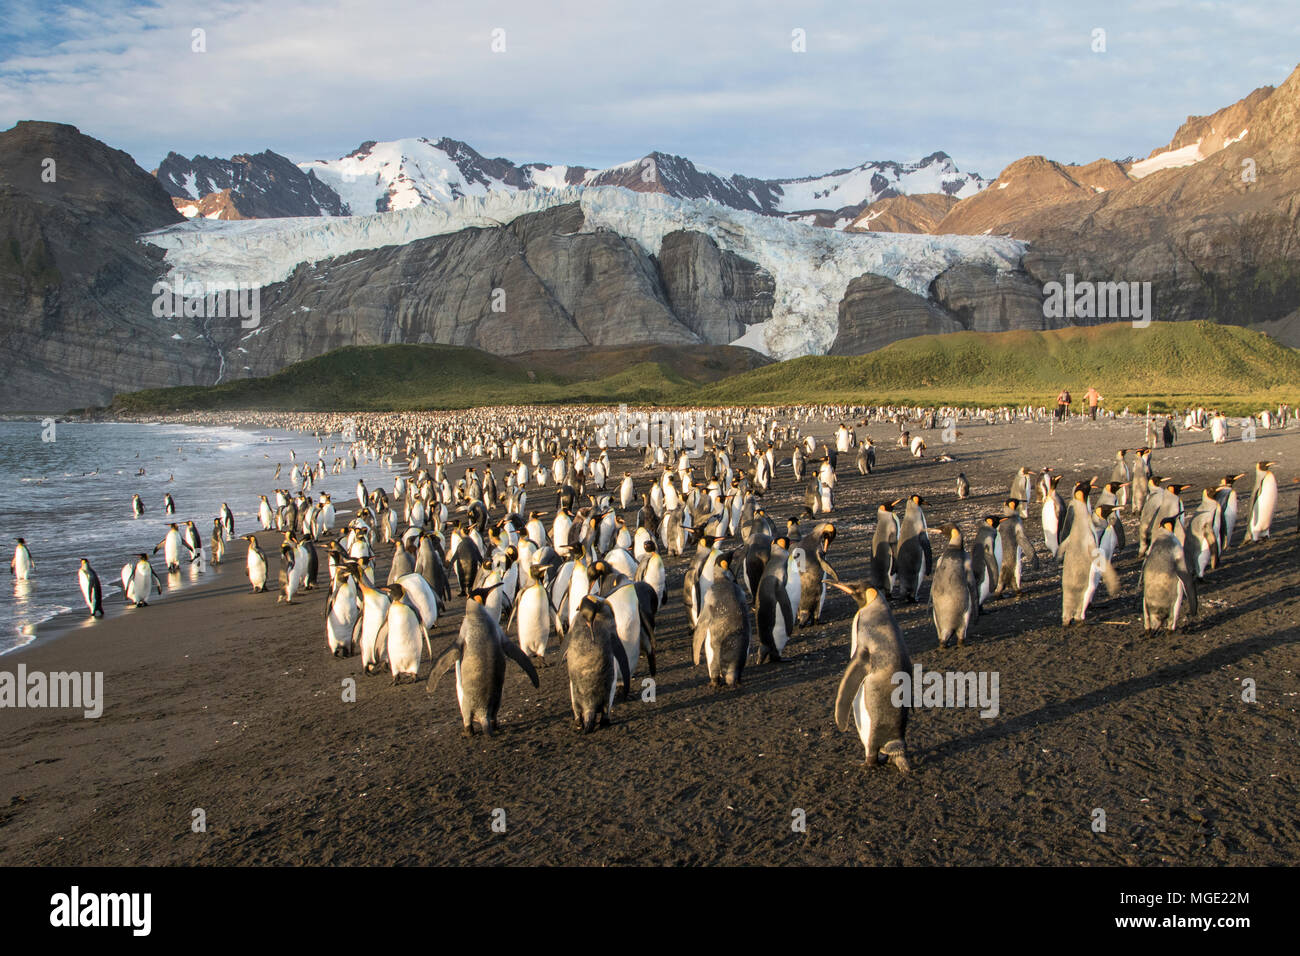 king penguin Aptenodytes patagonicus view of adults and chicks in dense breeding colony, Gold Harbour, South Georgia - Stock Image